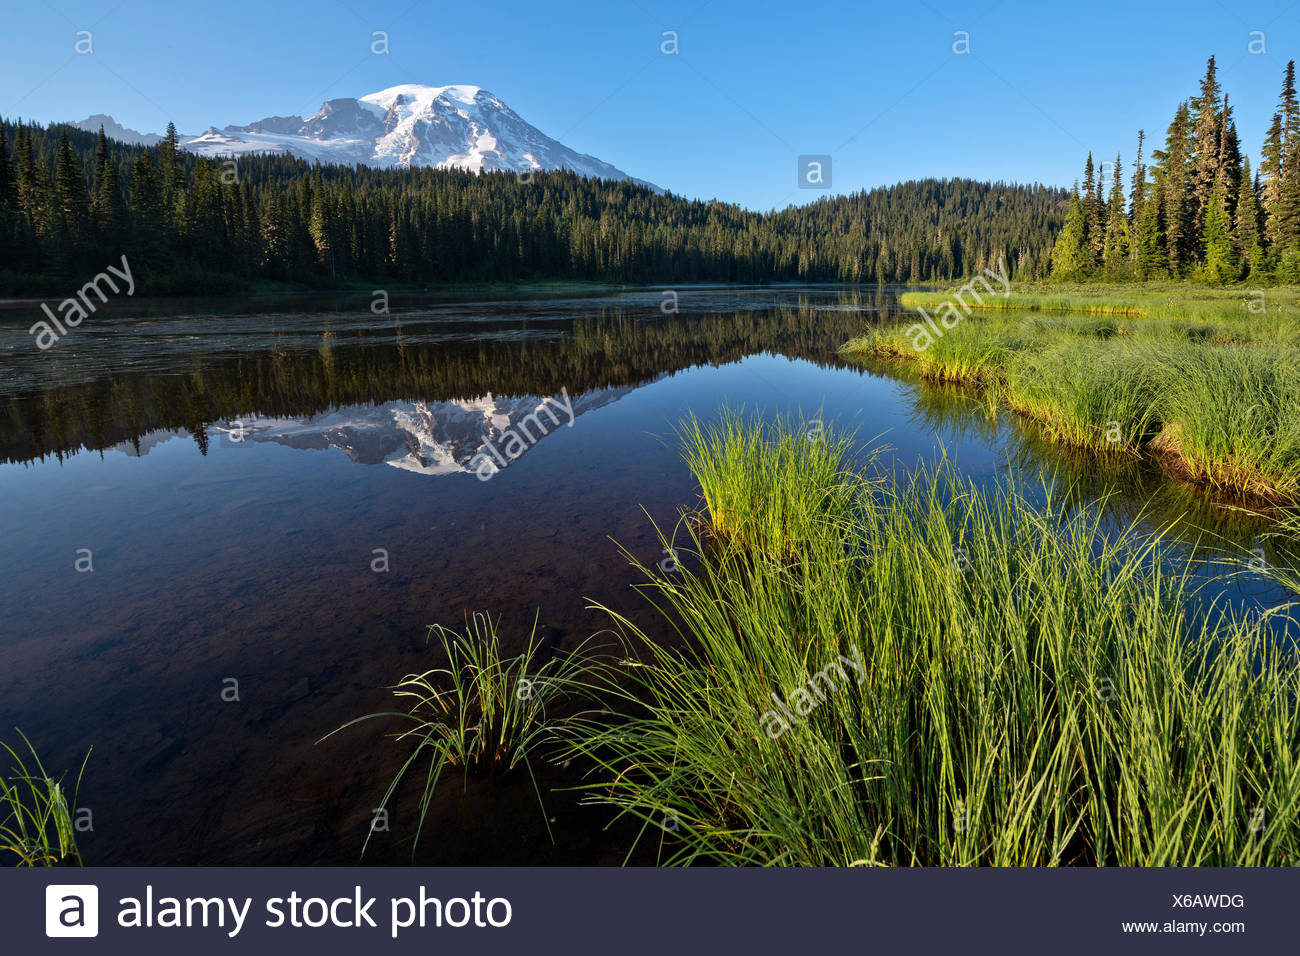 Stratovolcano in the Cascade Mountains - Mount Rainier NP USA above 4392 m and potentially very dangerous for the whole region of Seattle (melting glaciers causing massive lahars) - Stock Image